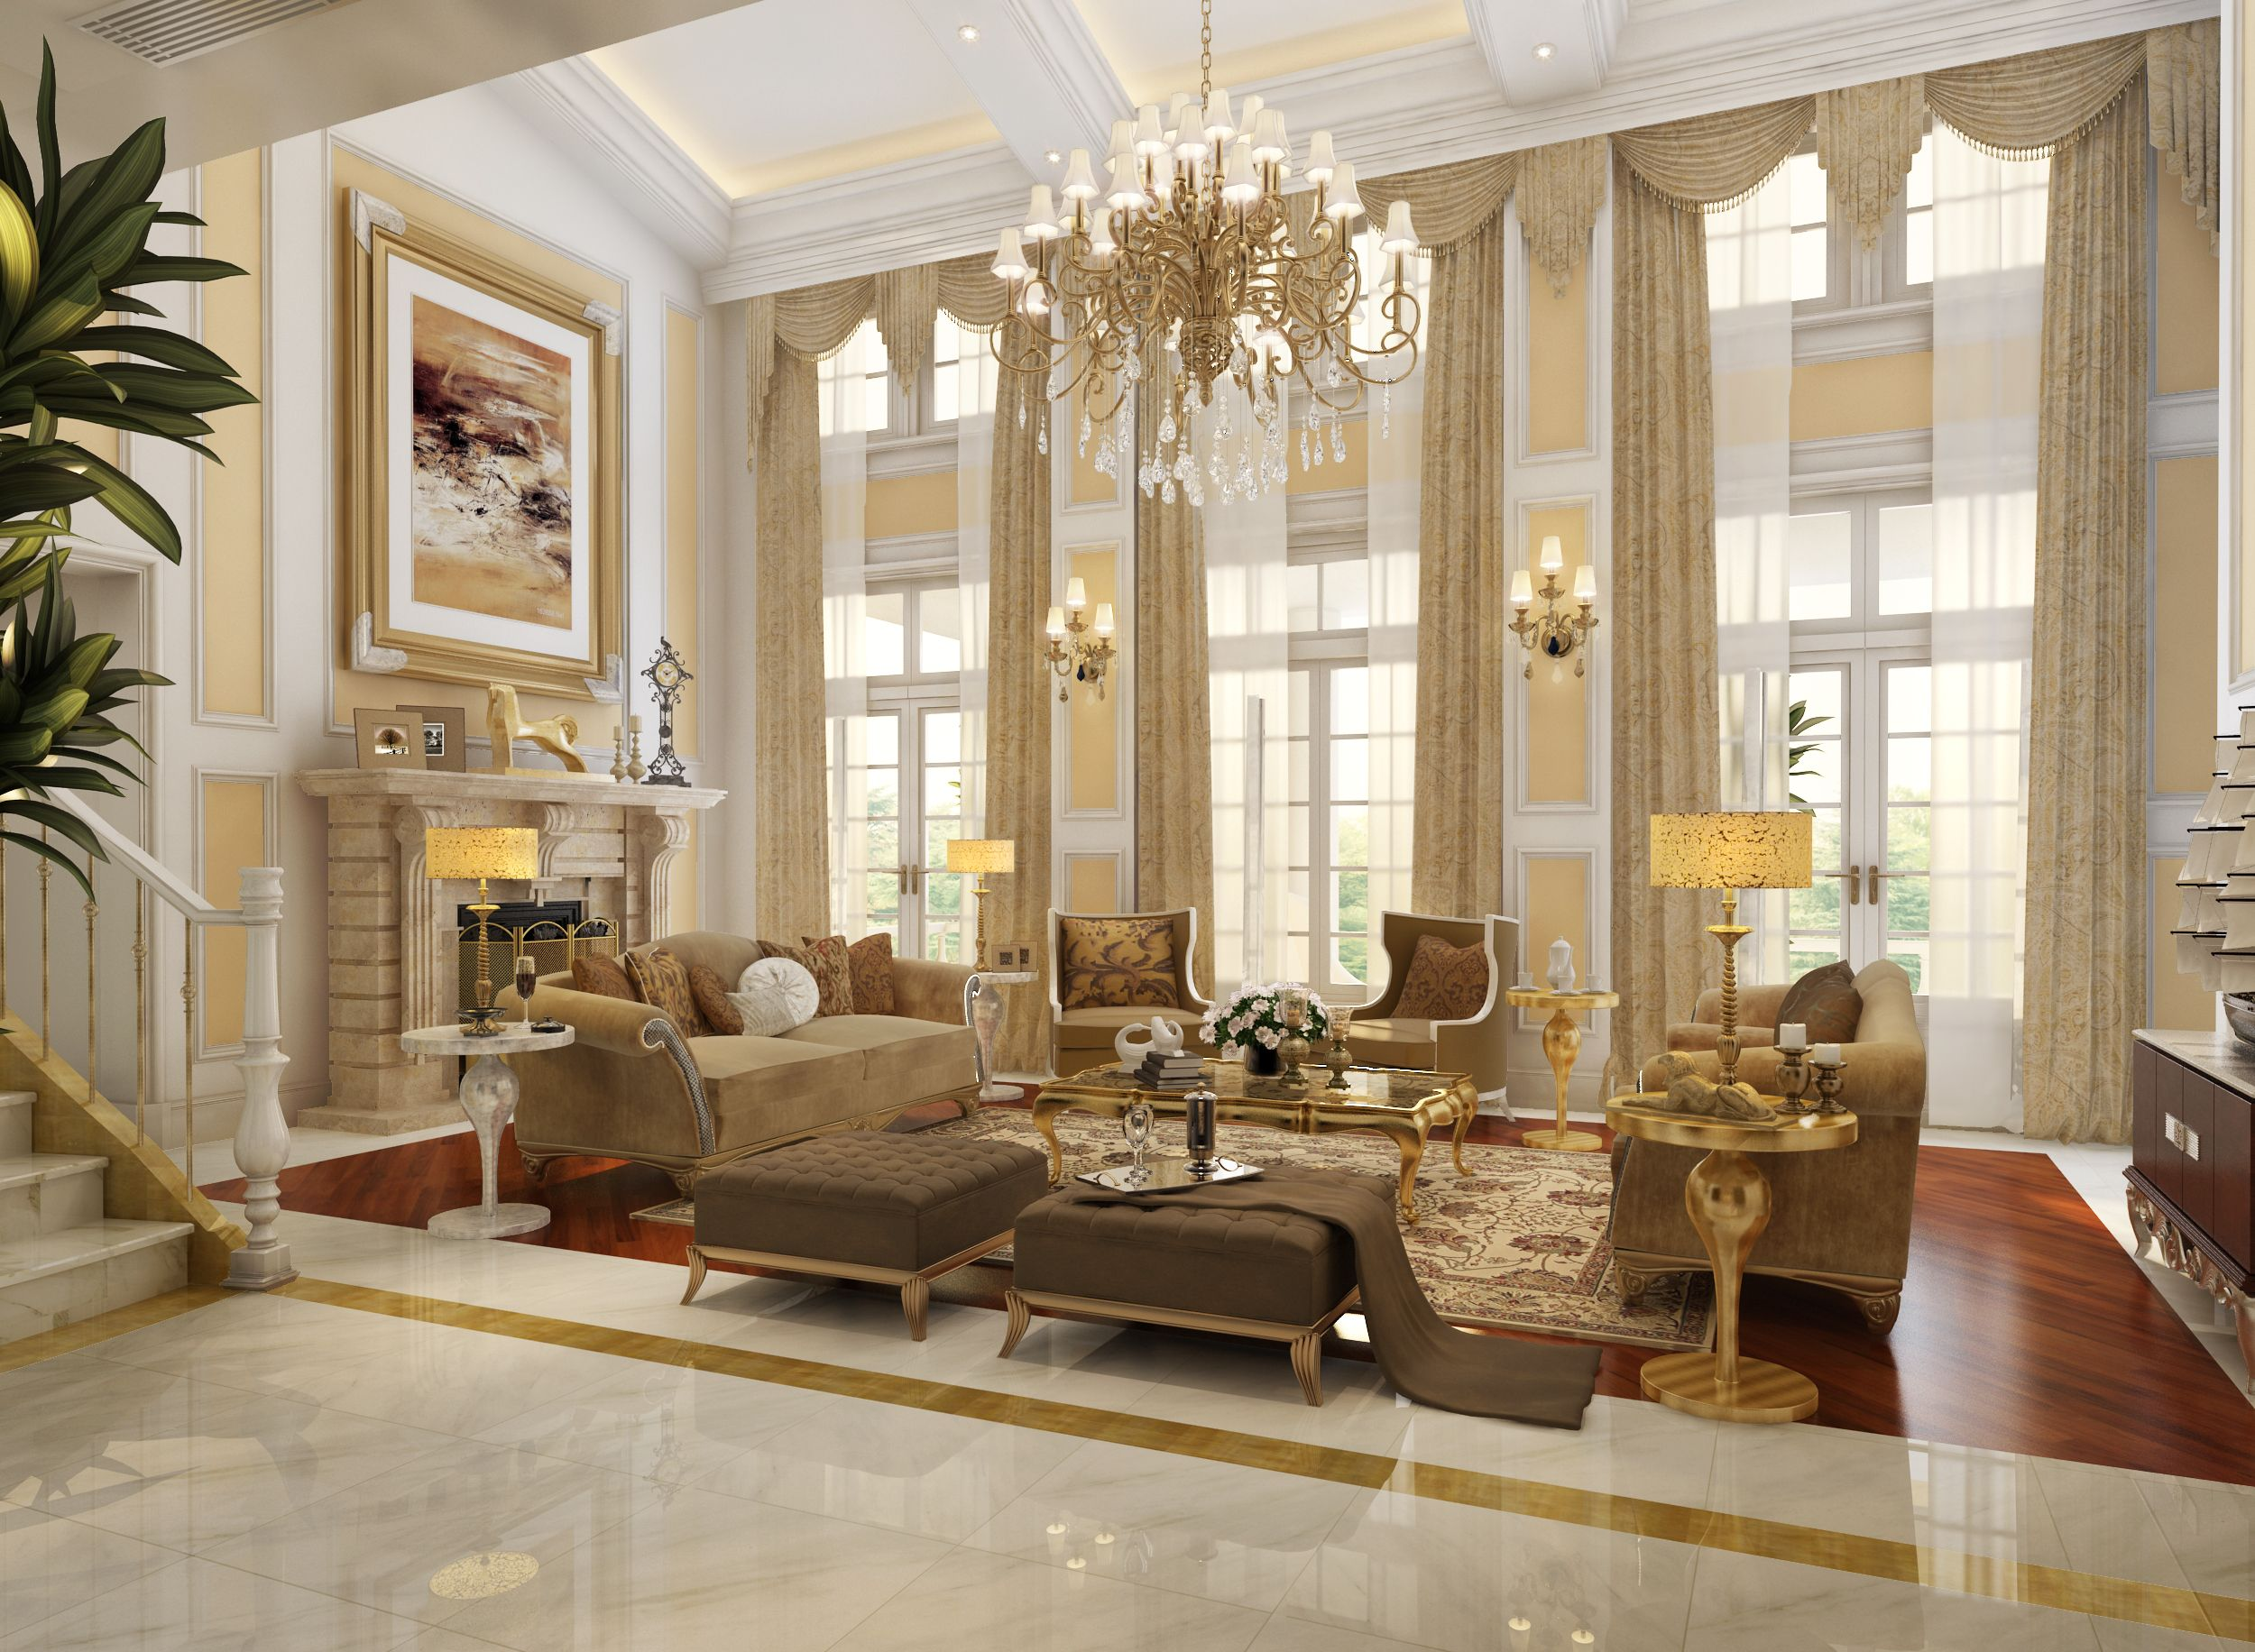 127 Luxury Living Room Designs | Living rooms, Luxury and Room